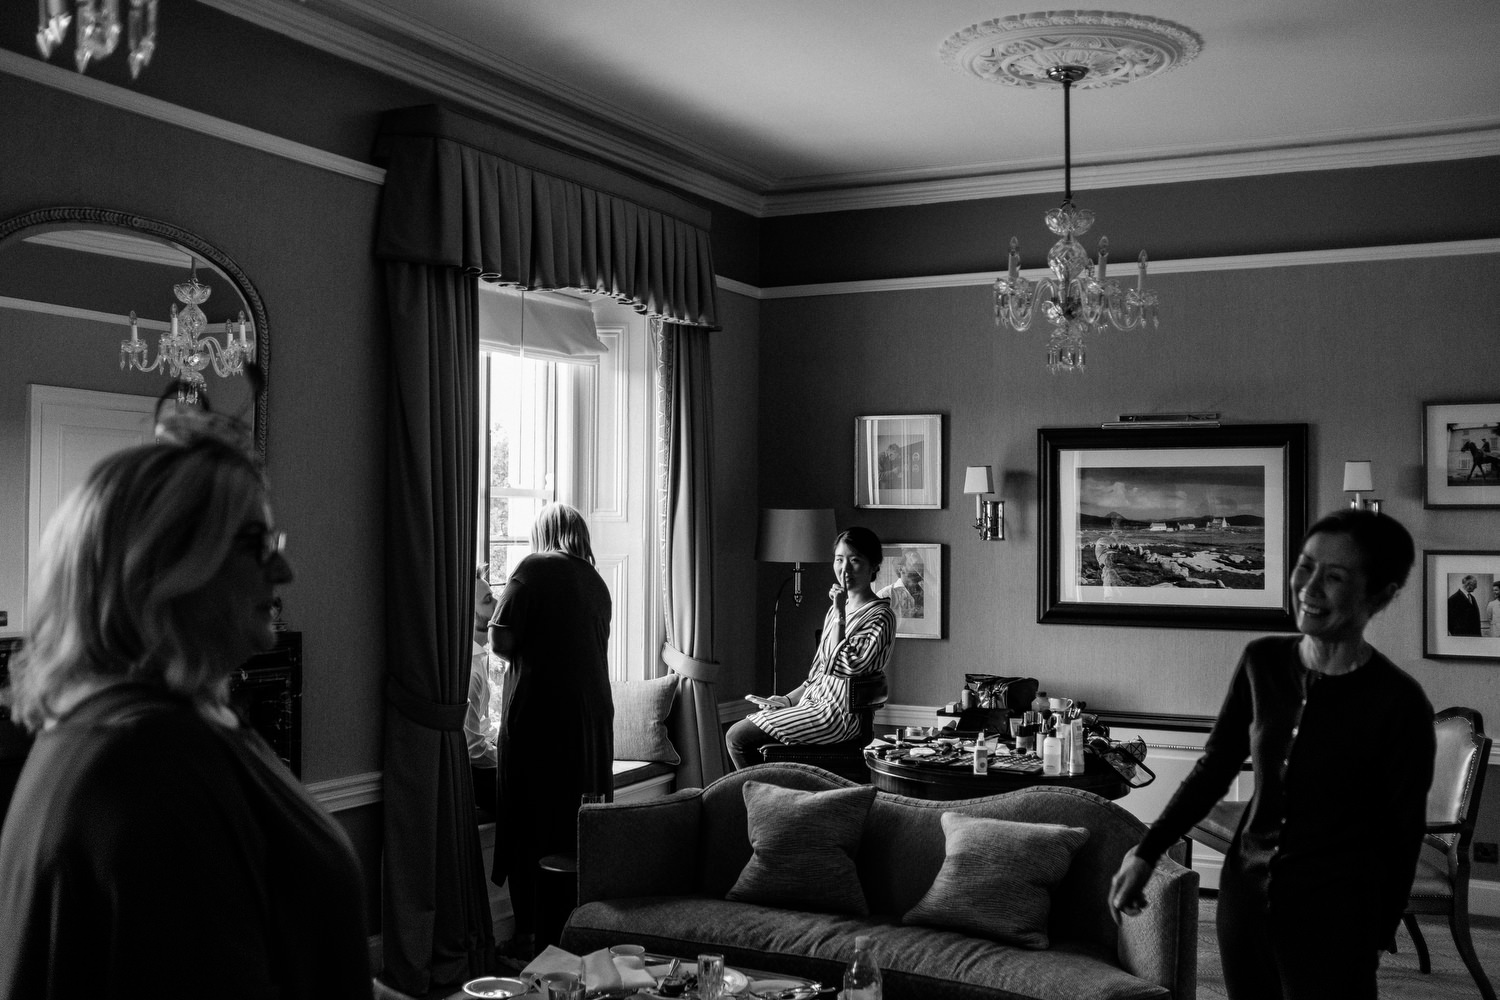 dmp0070_preparation_photographer_dublin_david_mcclelland_photography_shelbourne_documentary_wedding